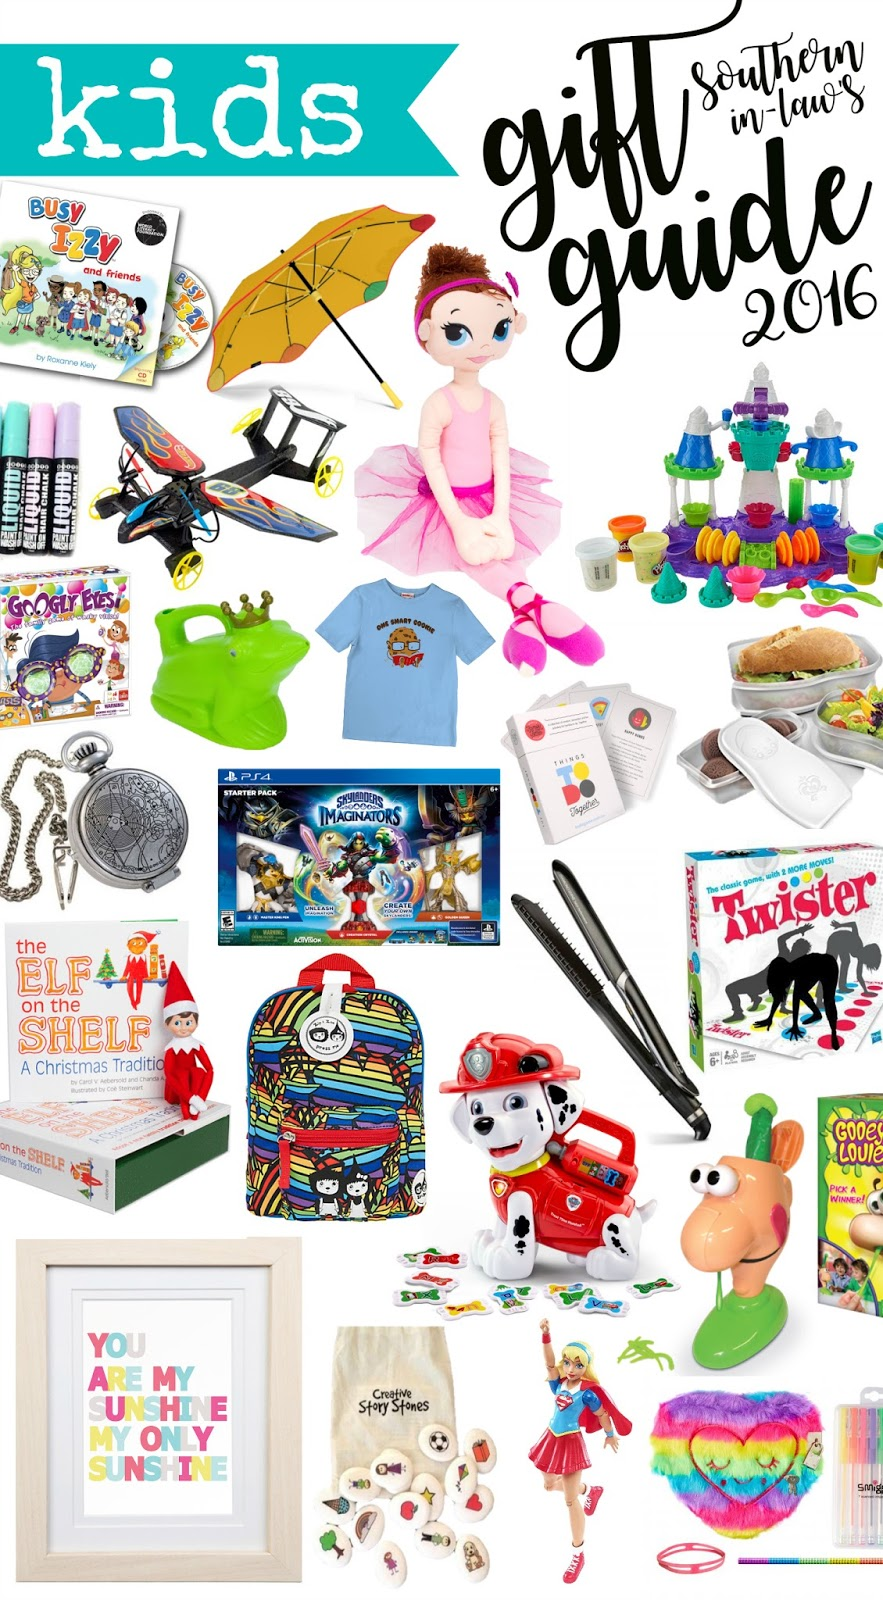 Kids Gift Guide 2016 - Children's Christmas Gift Ideas for All Ages